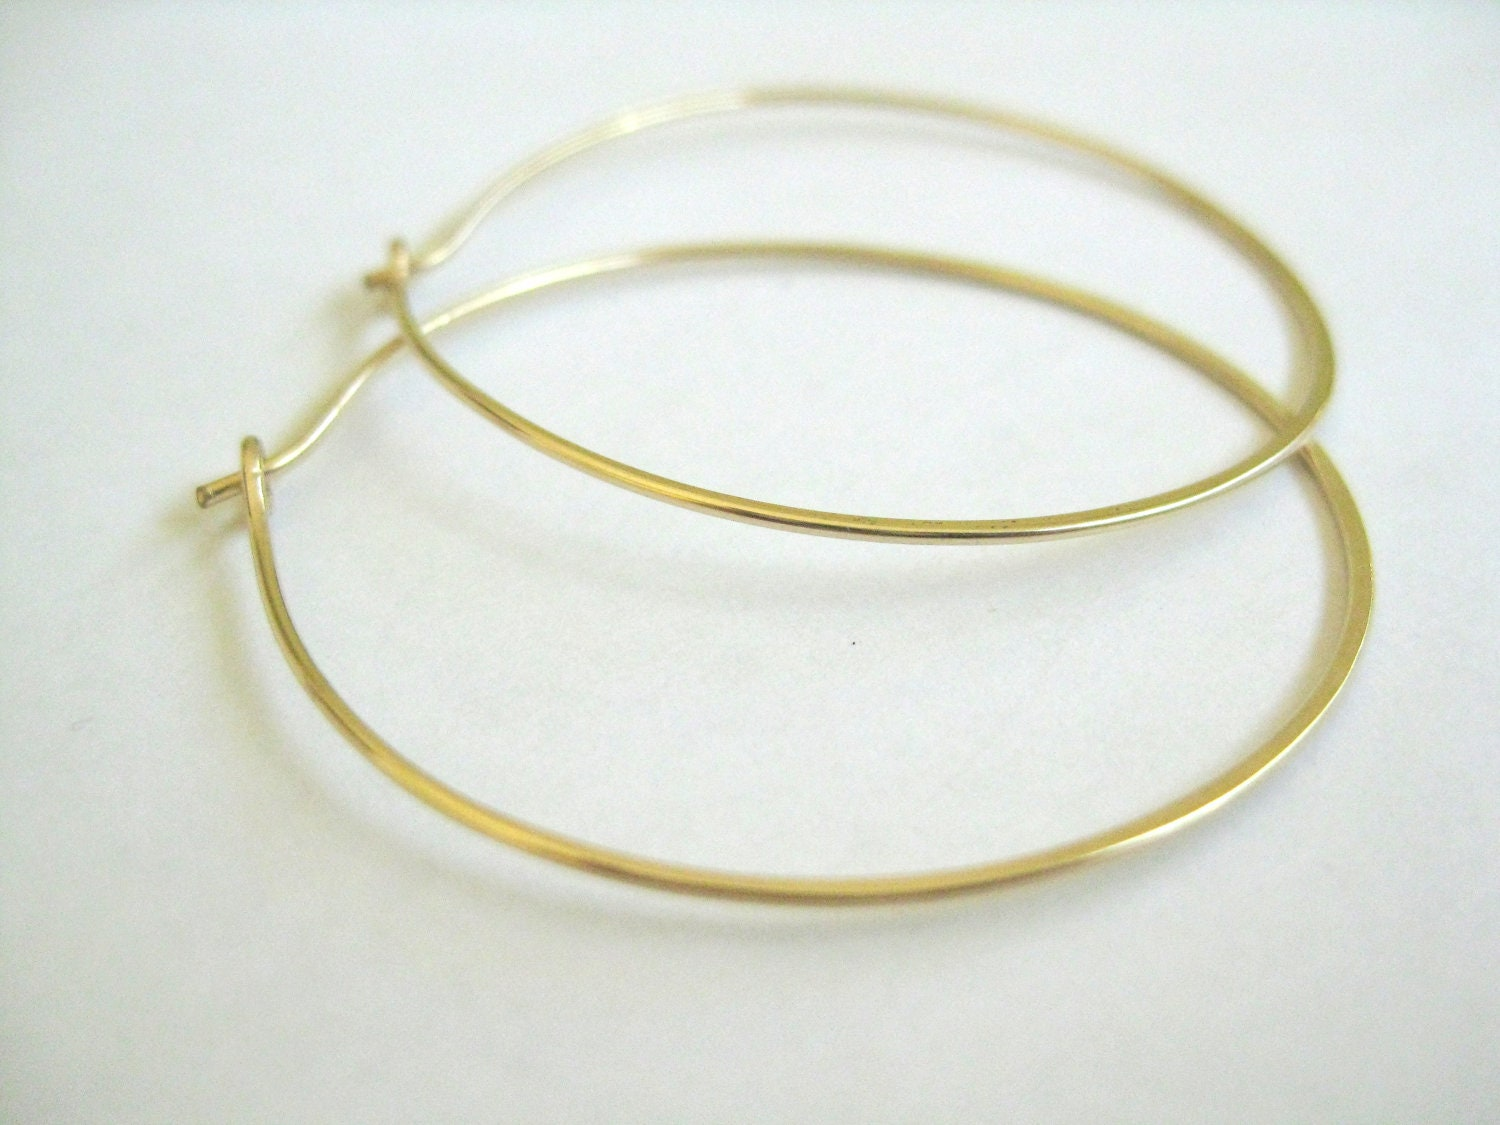 gold for from earrings buy detail hoop imitation work home designs product jewellery women earring simple pakistani